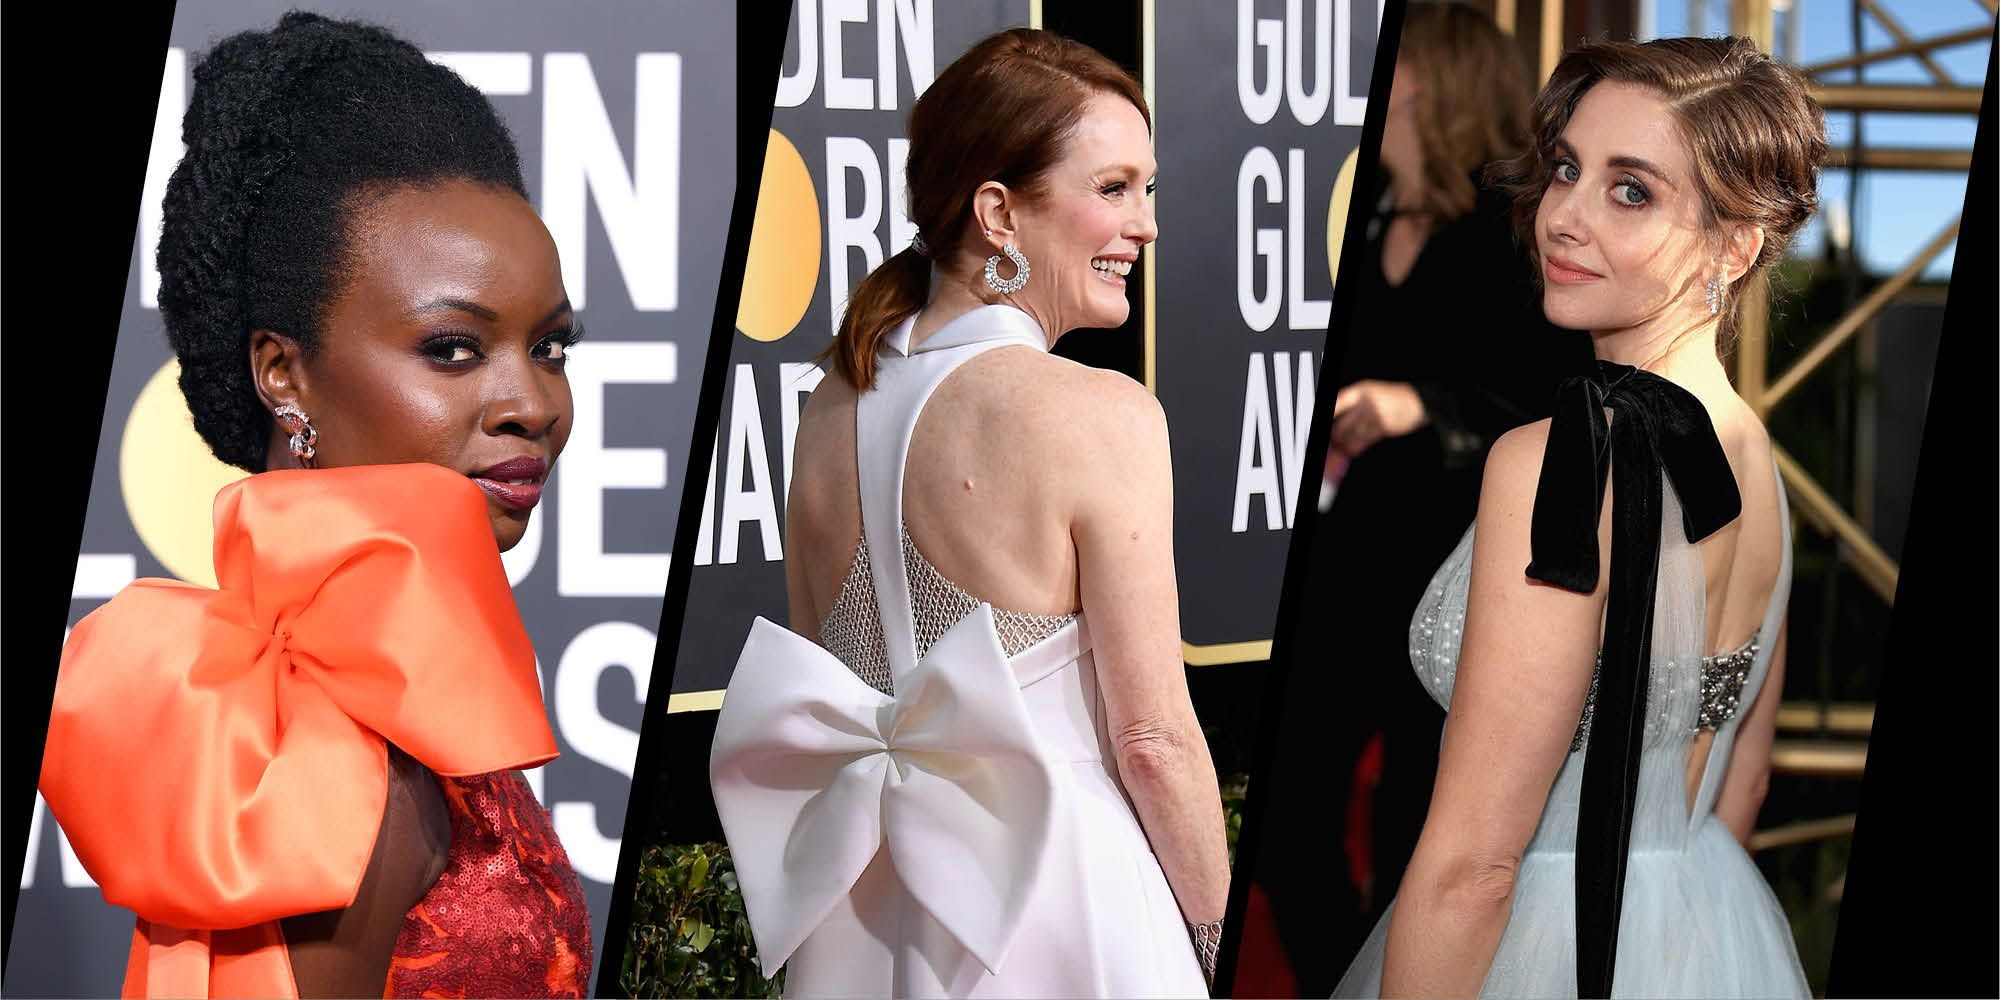 Bows at the Golden Globes